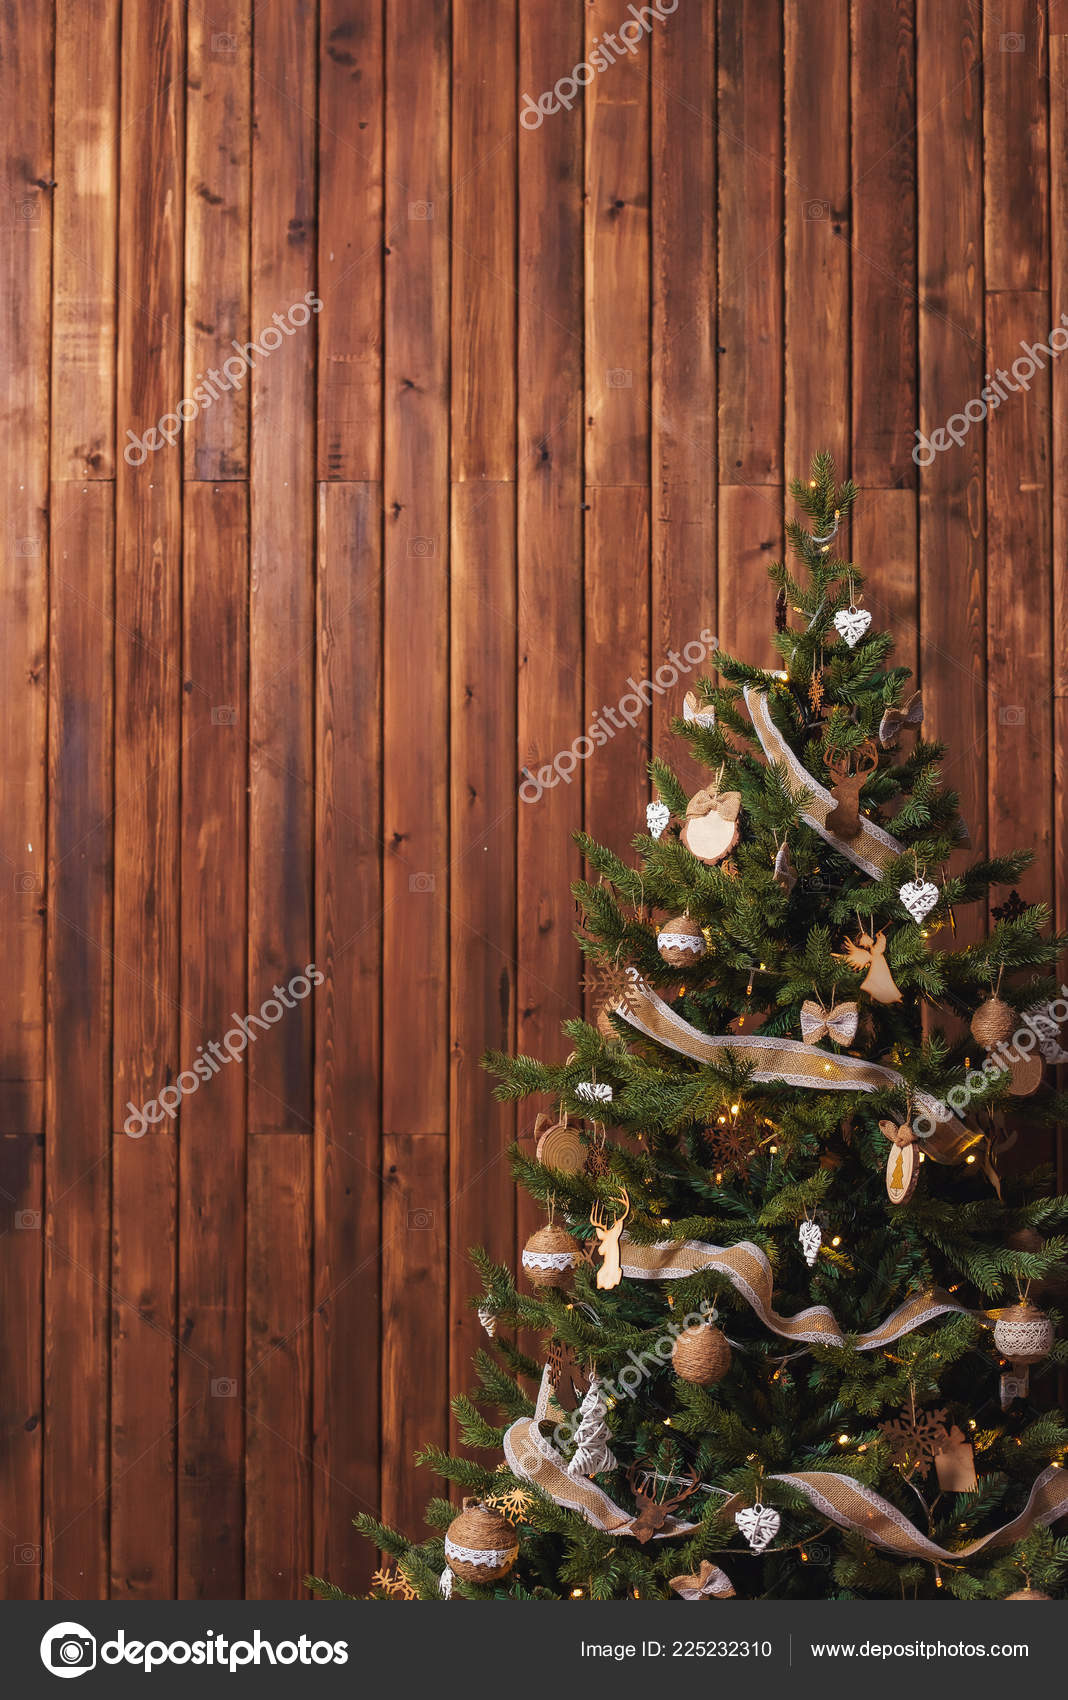 Rustic Christmas Tree Wooden Background